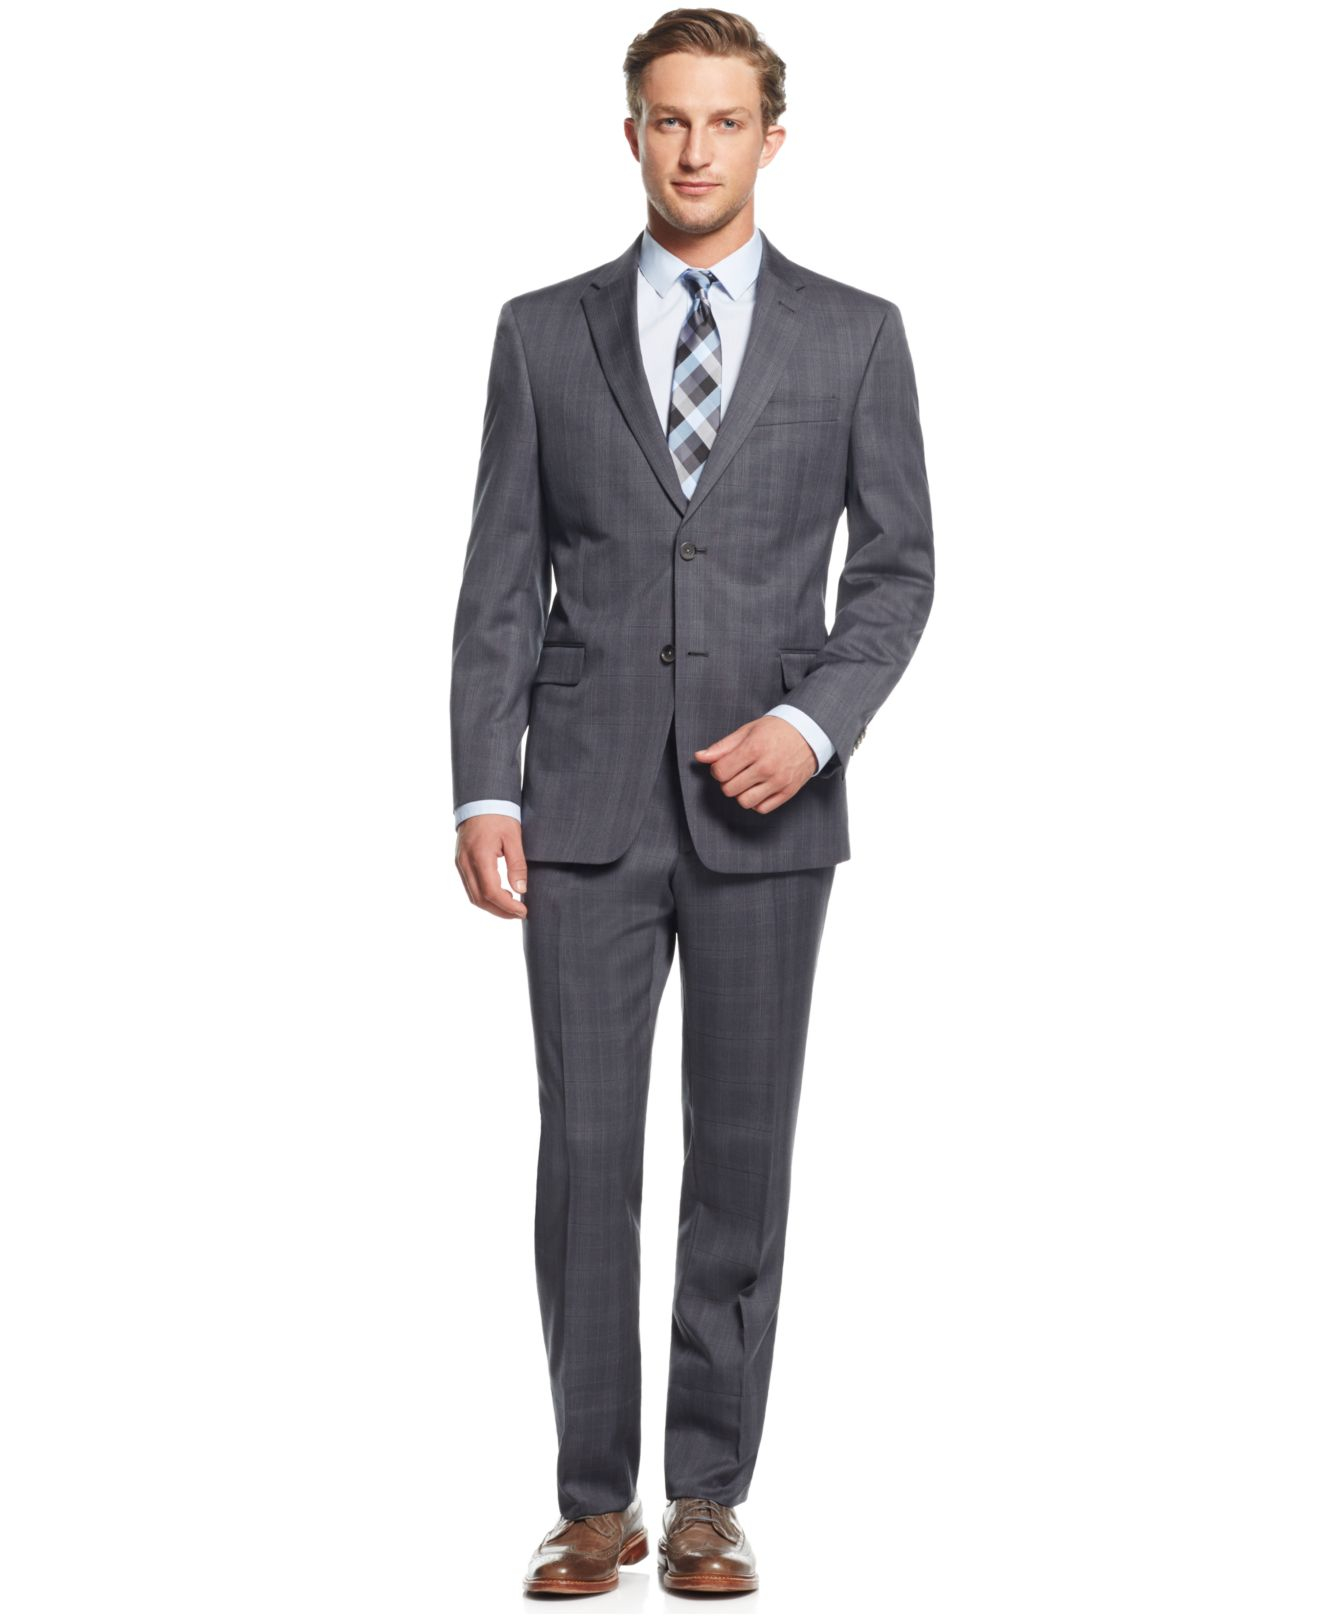 Tommy hilfiger Grey Plaid Slim-fit Suit in Gray for Men | Lyst